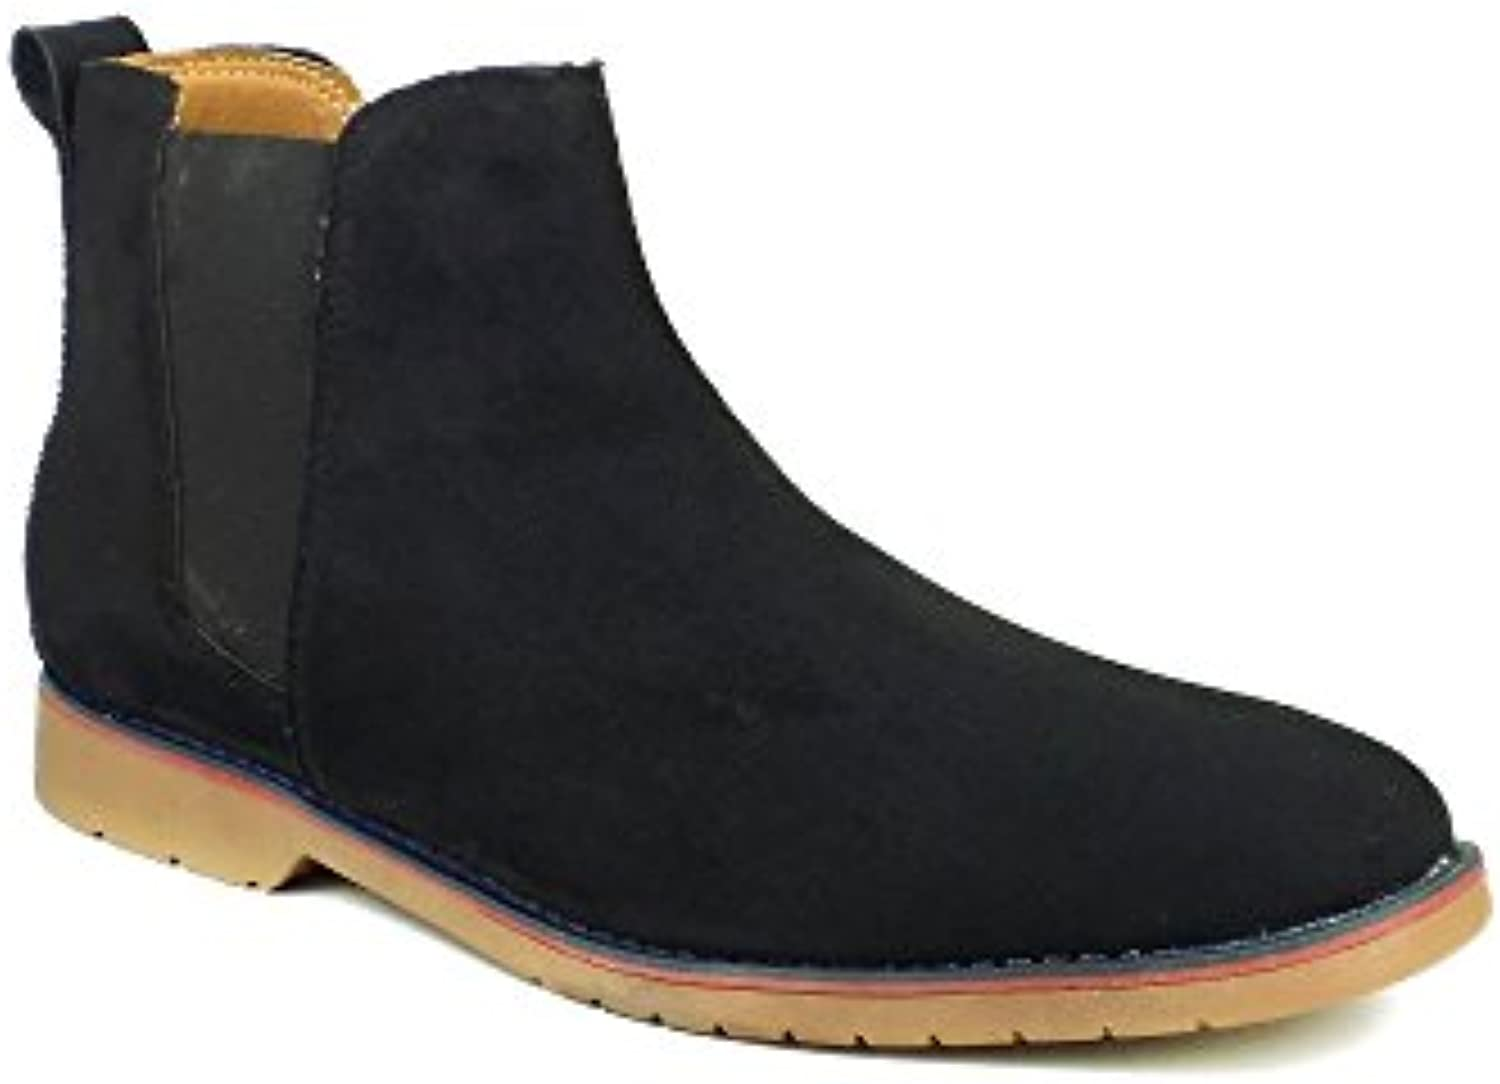 Ripley Brooklyn Series Men Boots Black